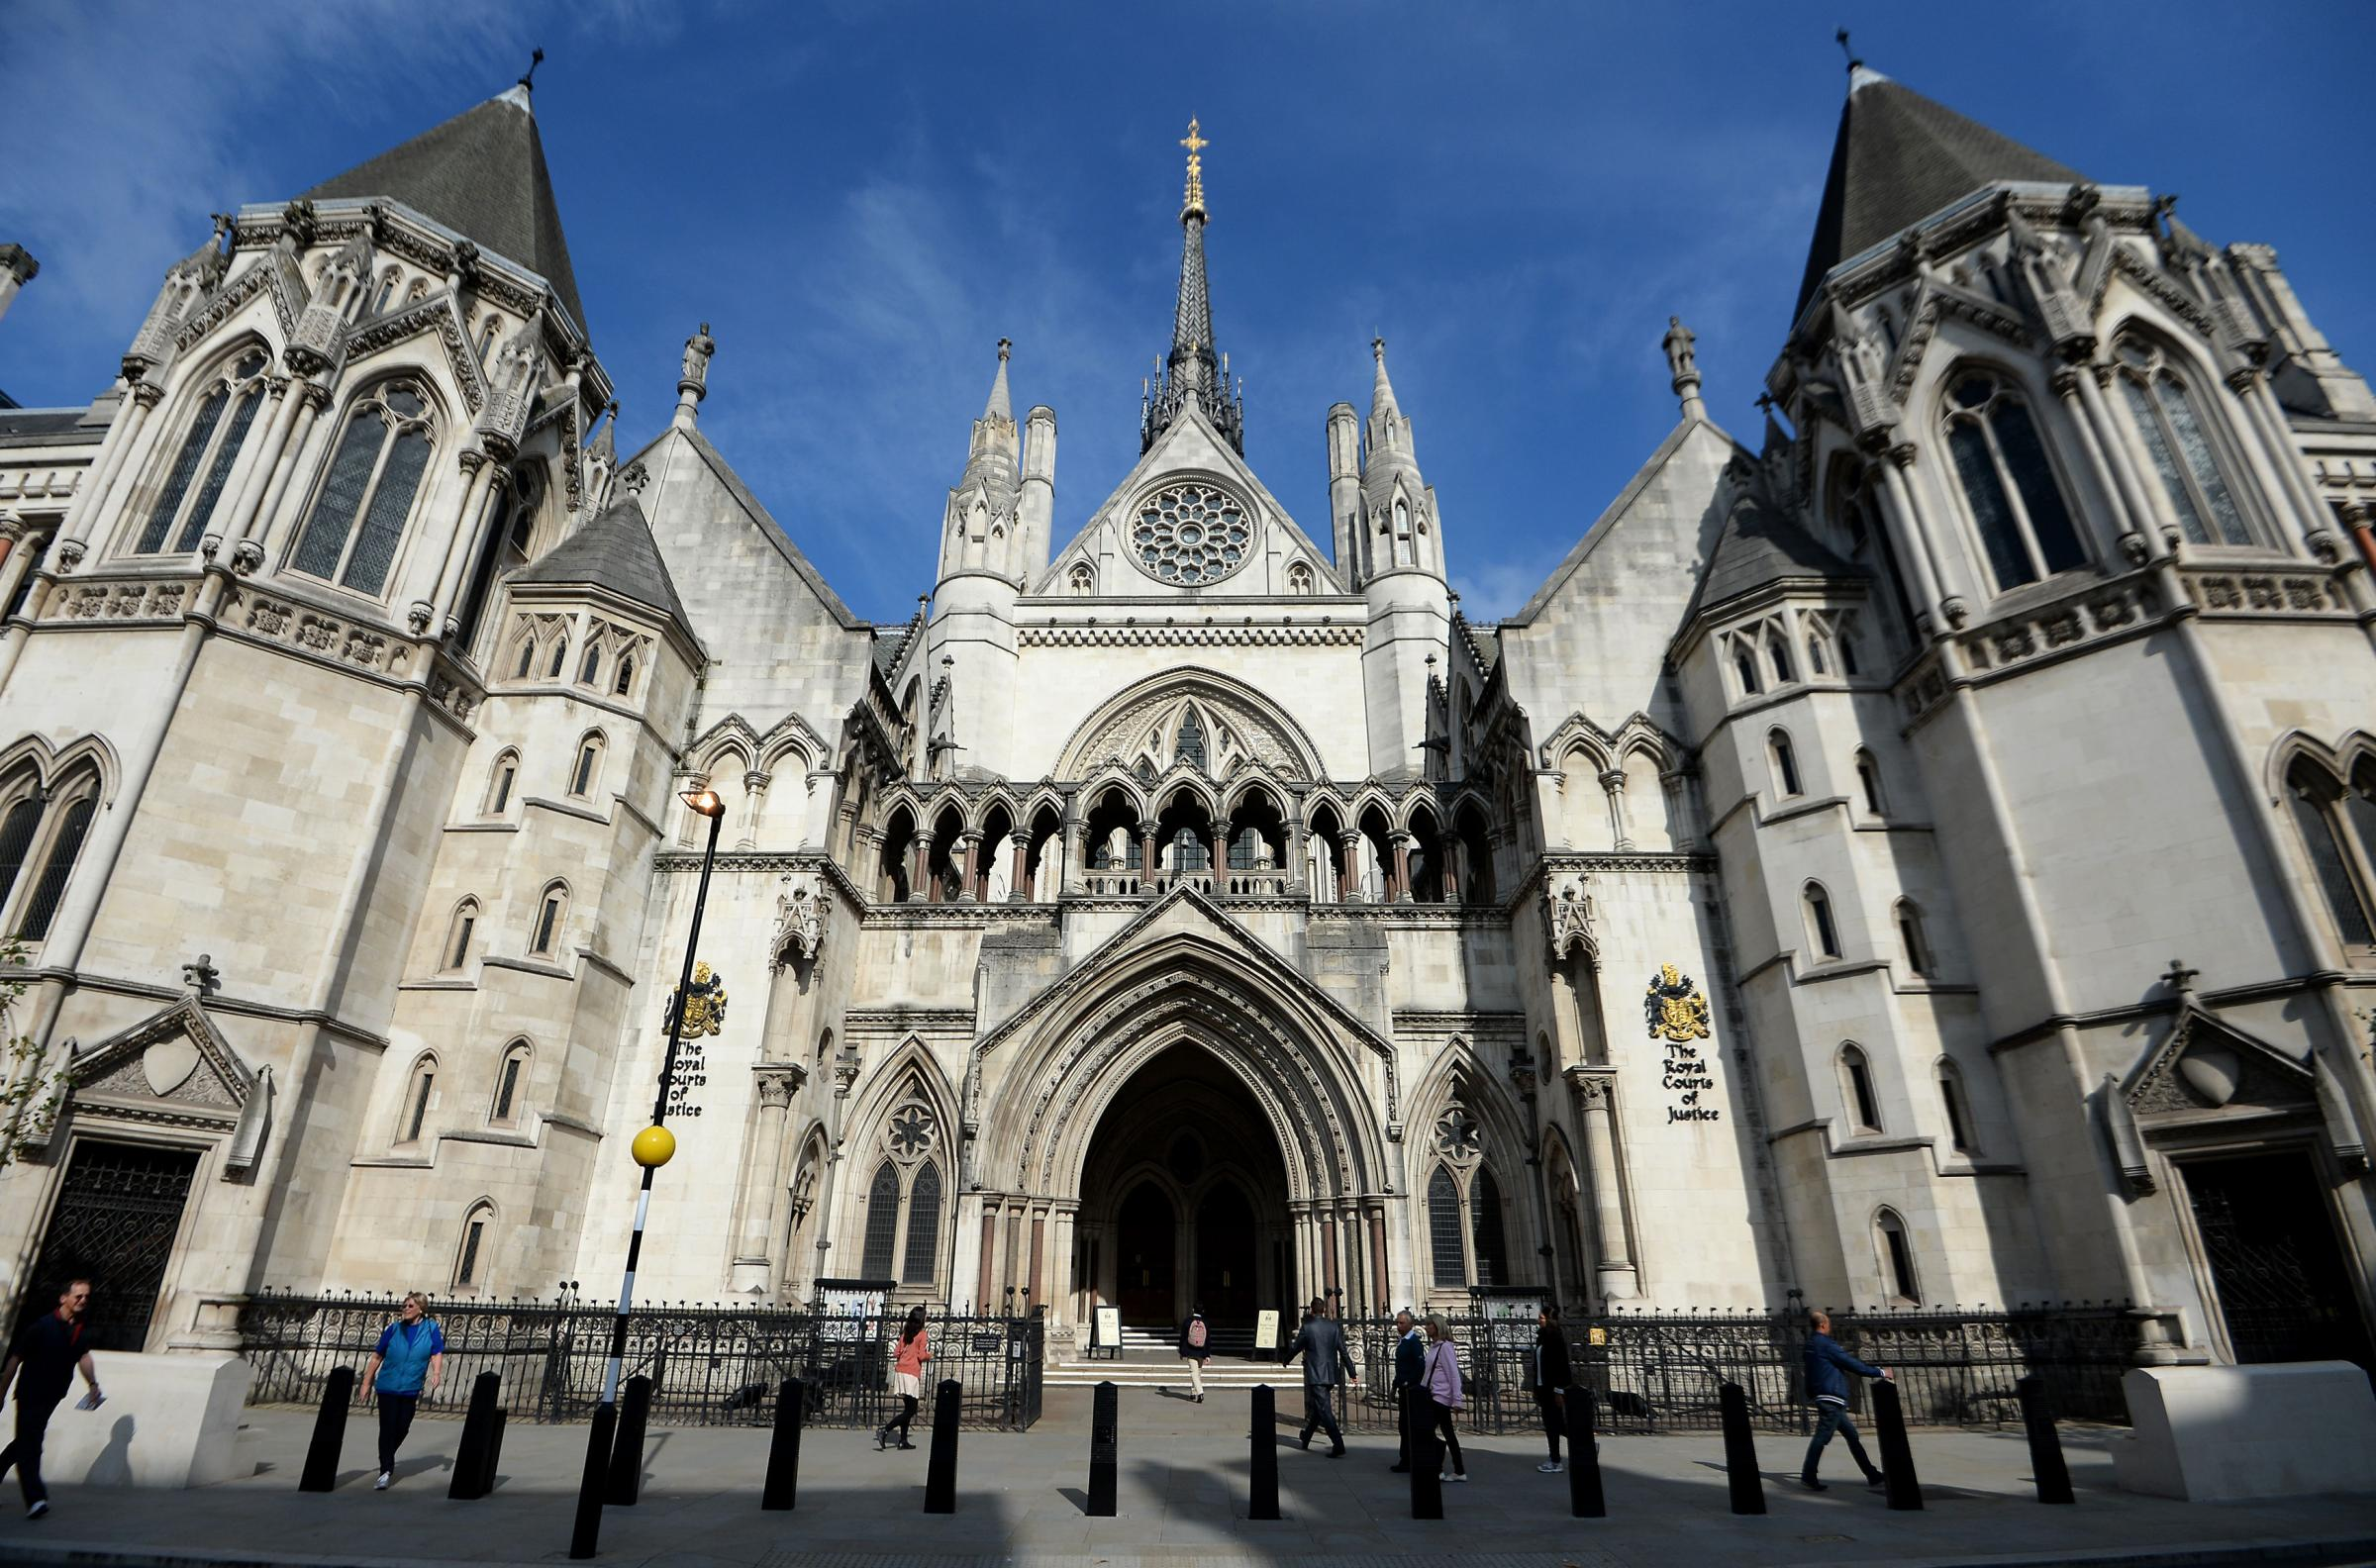 Farmer's son wins £2.7m slice of dad's business in High Court decision on family feud. Picture: Andrew Matthews/PA Wire